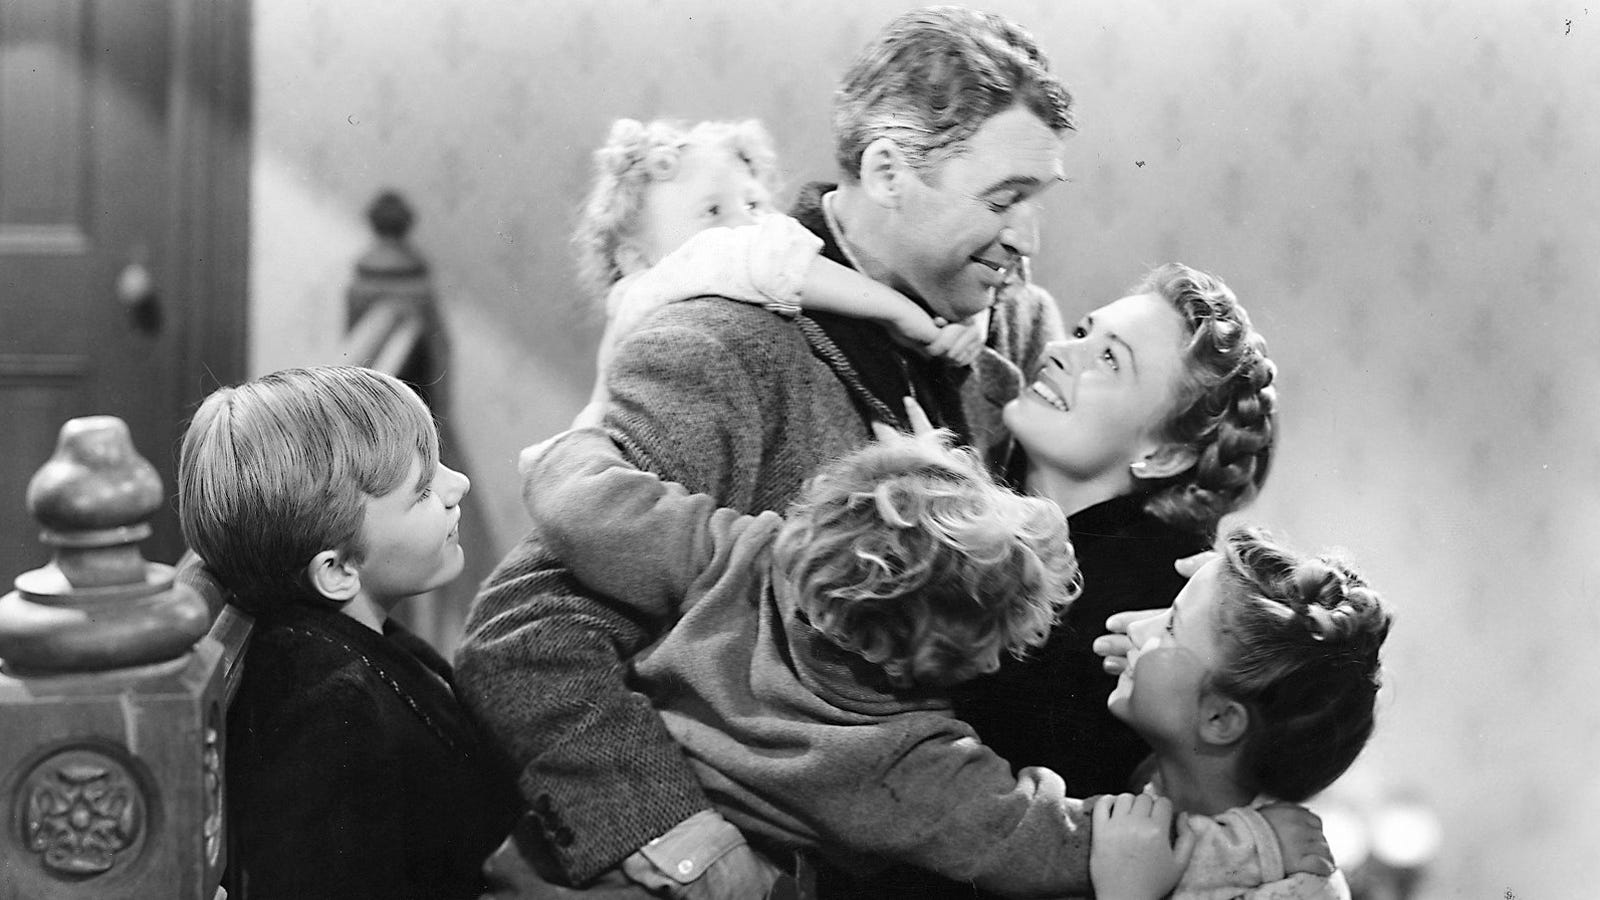 Is Holiday Classic It's A Wonderful Life Secretly (or Actually) a Sci-Fi/Fantasy Movie?